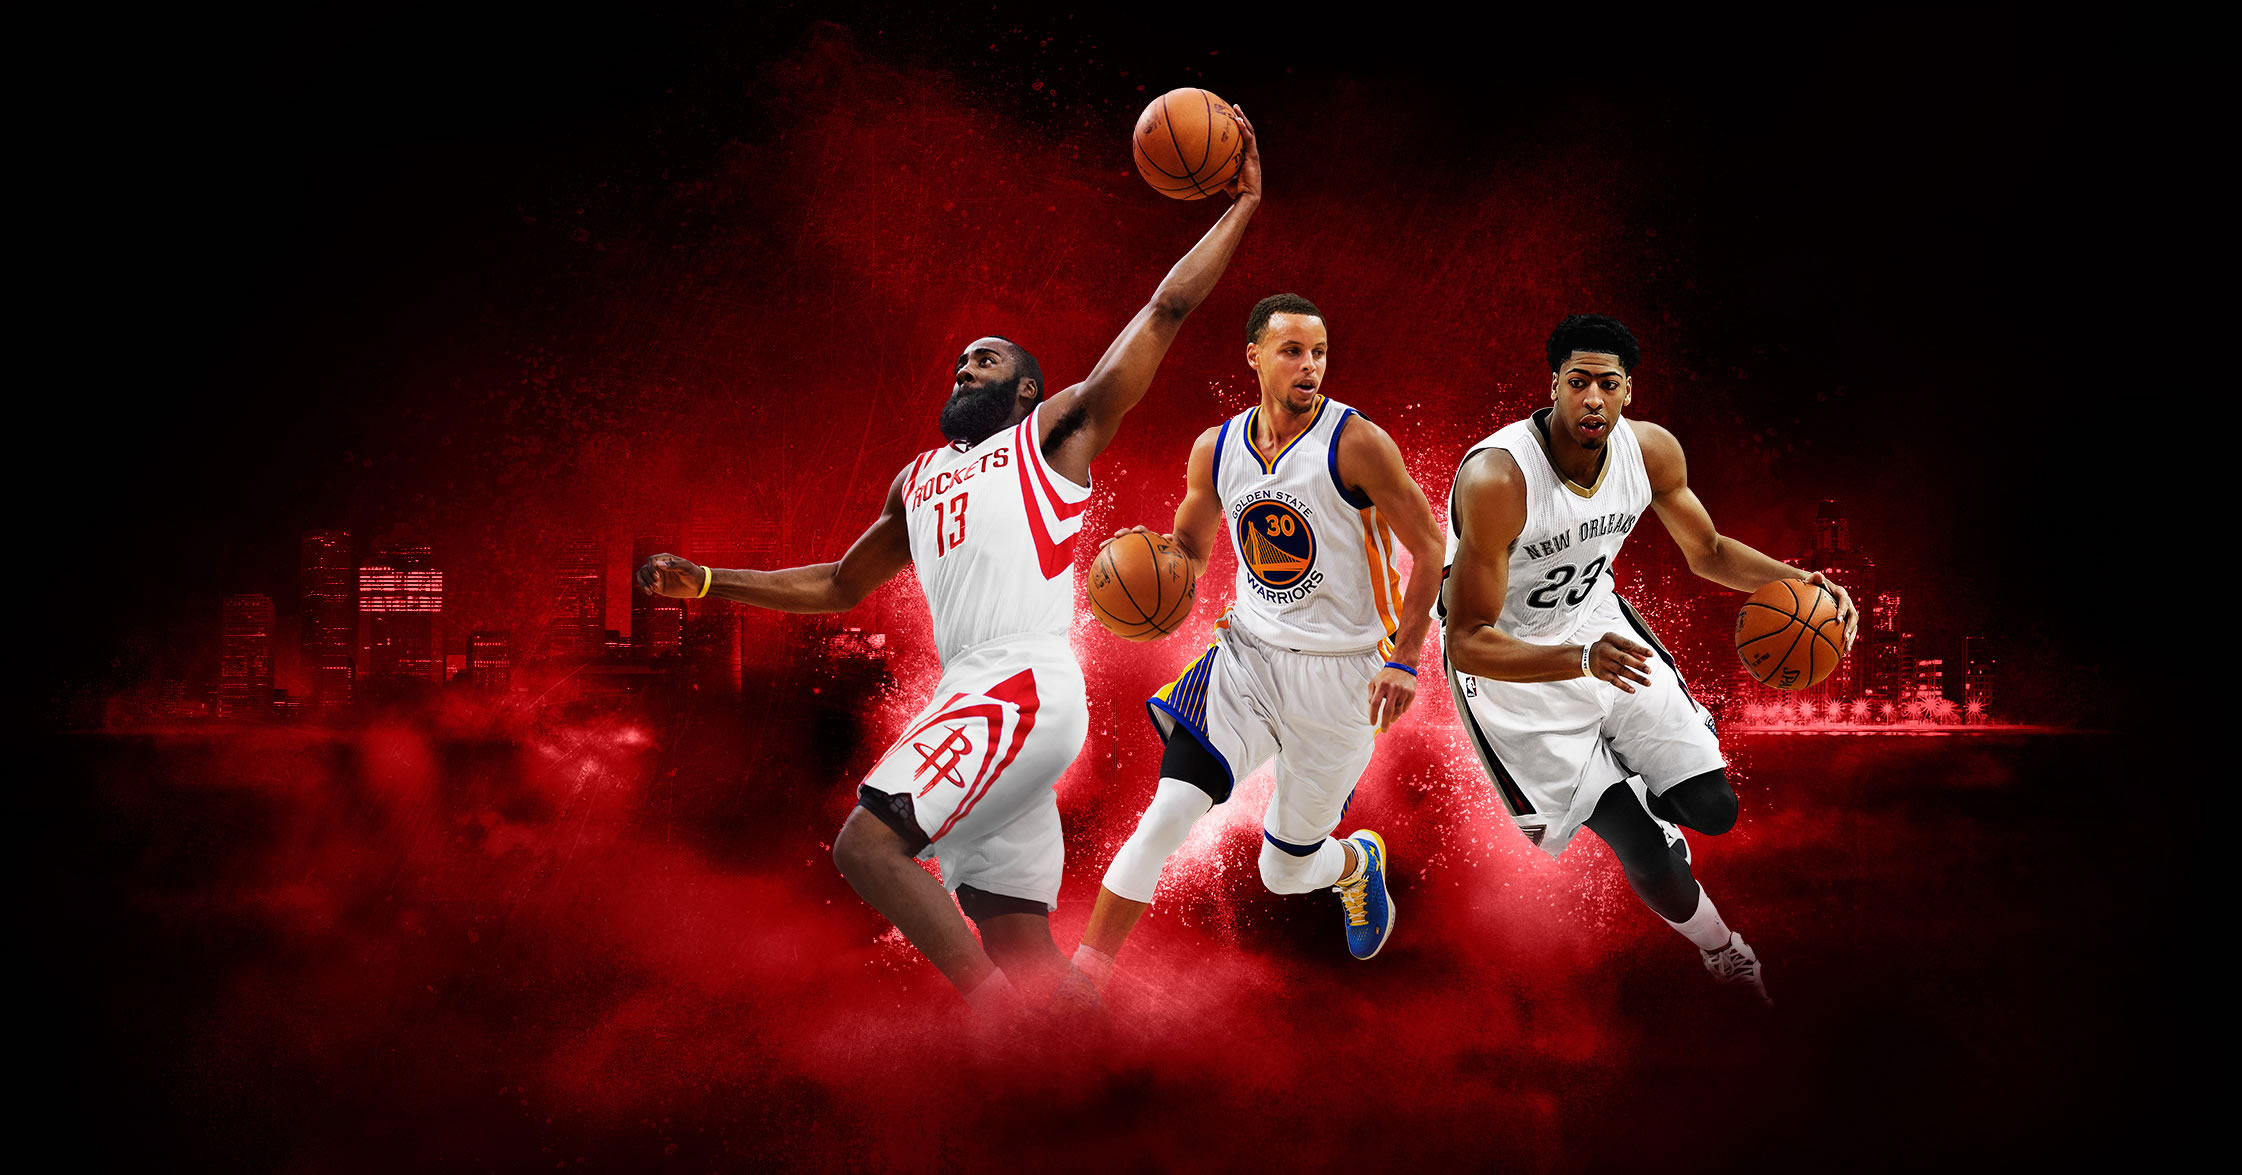 NBA 2K16 Review and Gameplay - COIN-OP TV